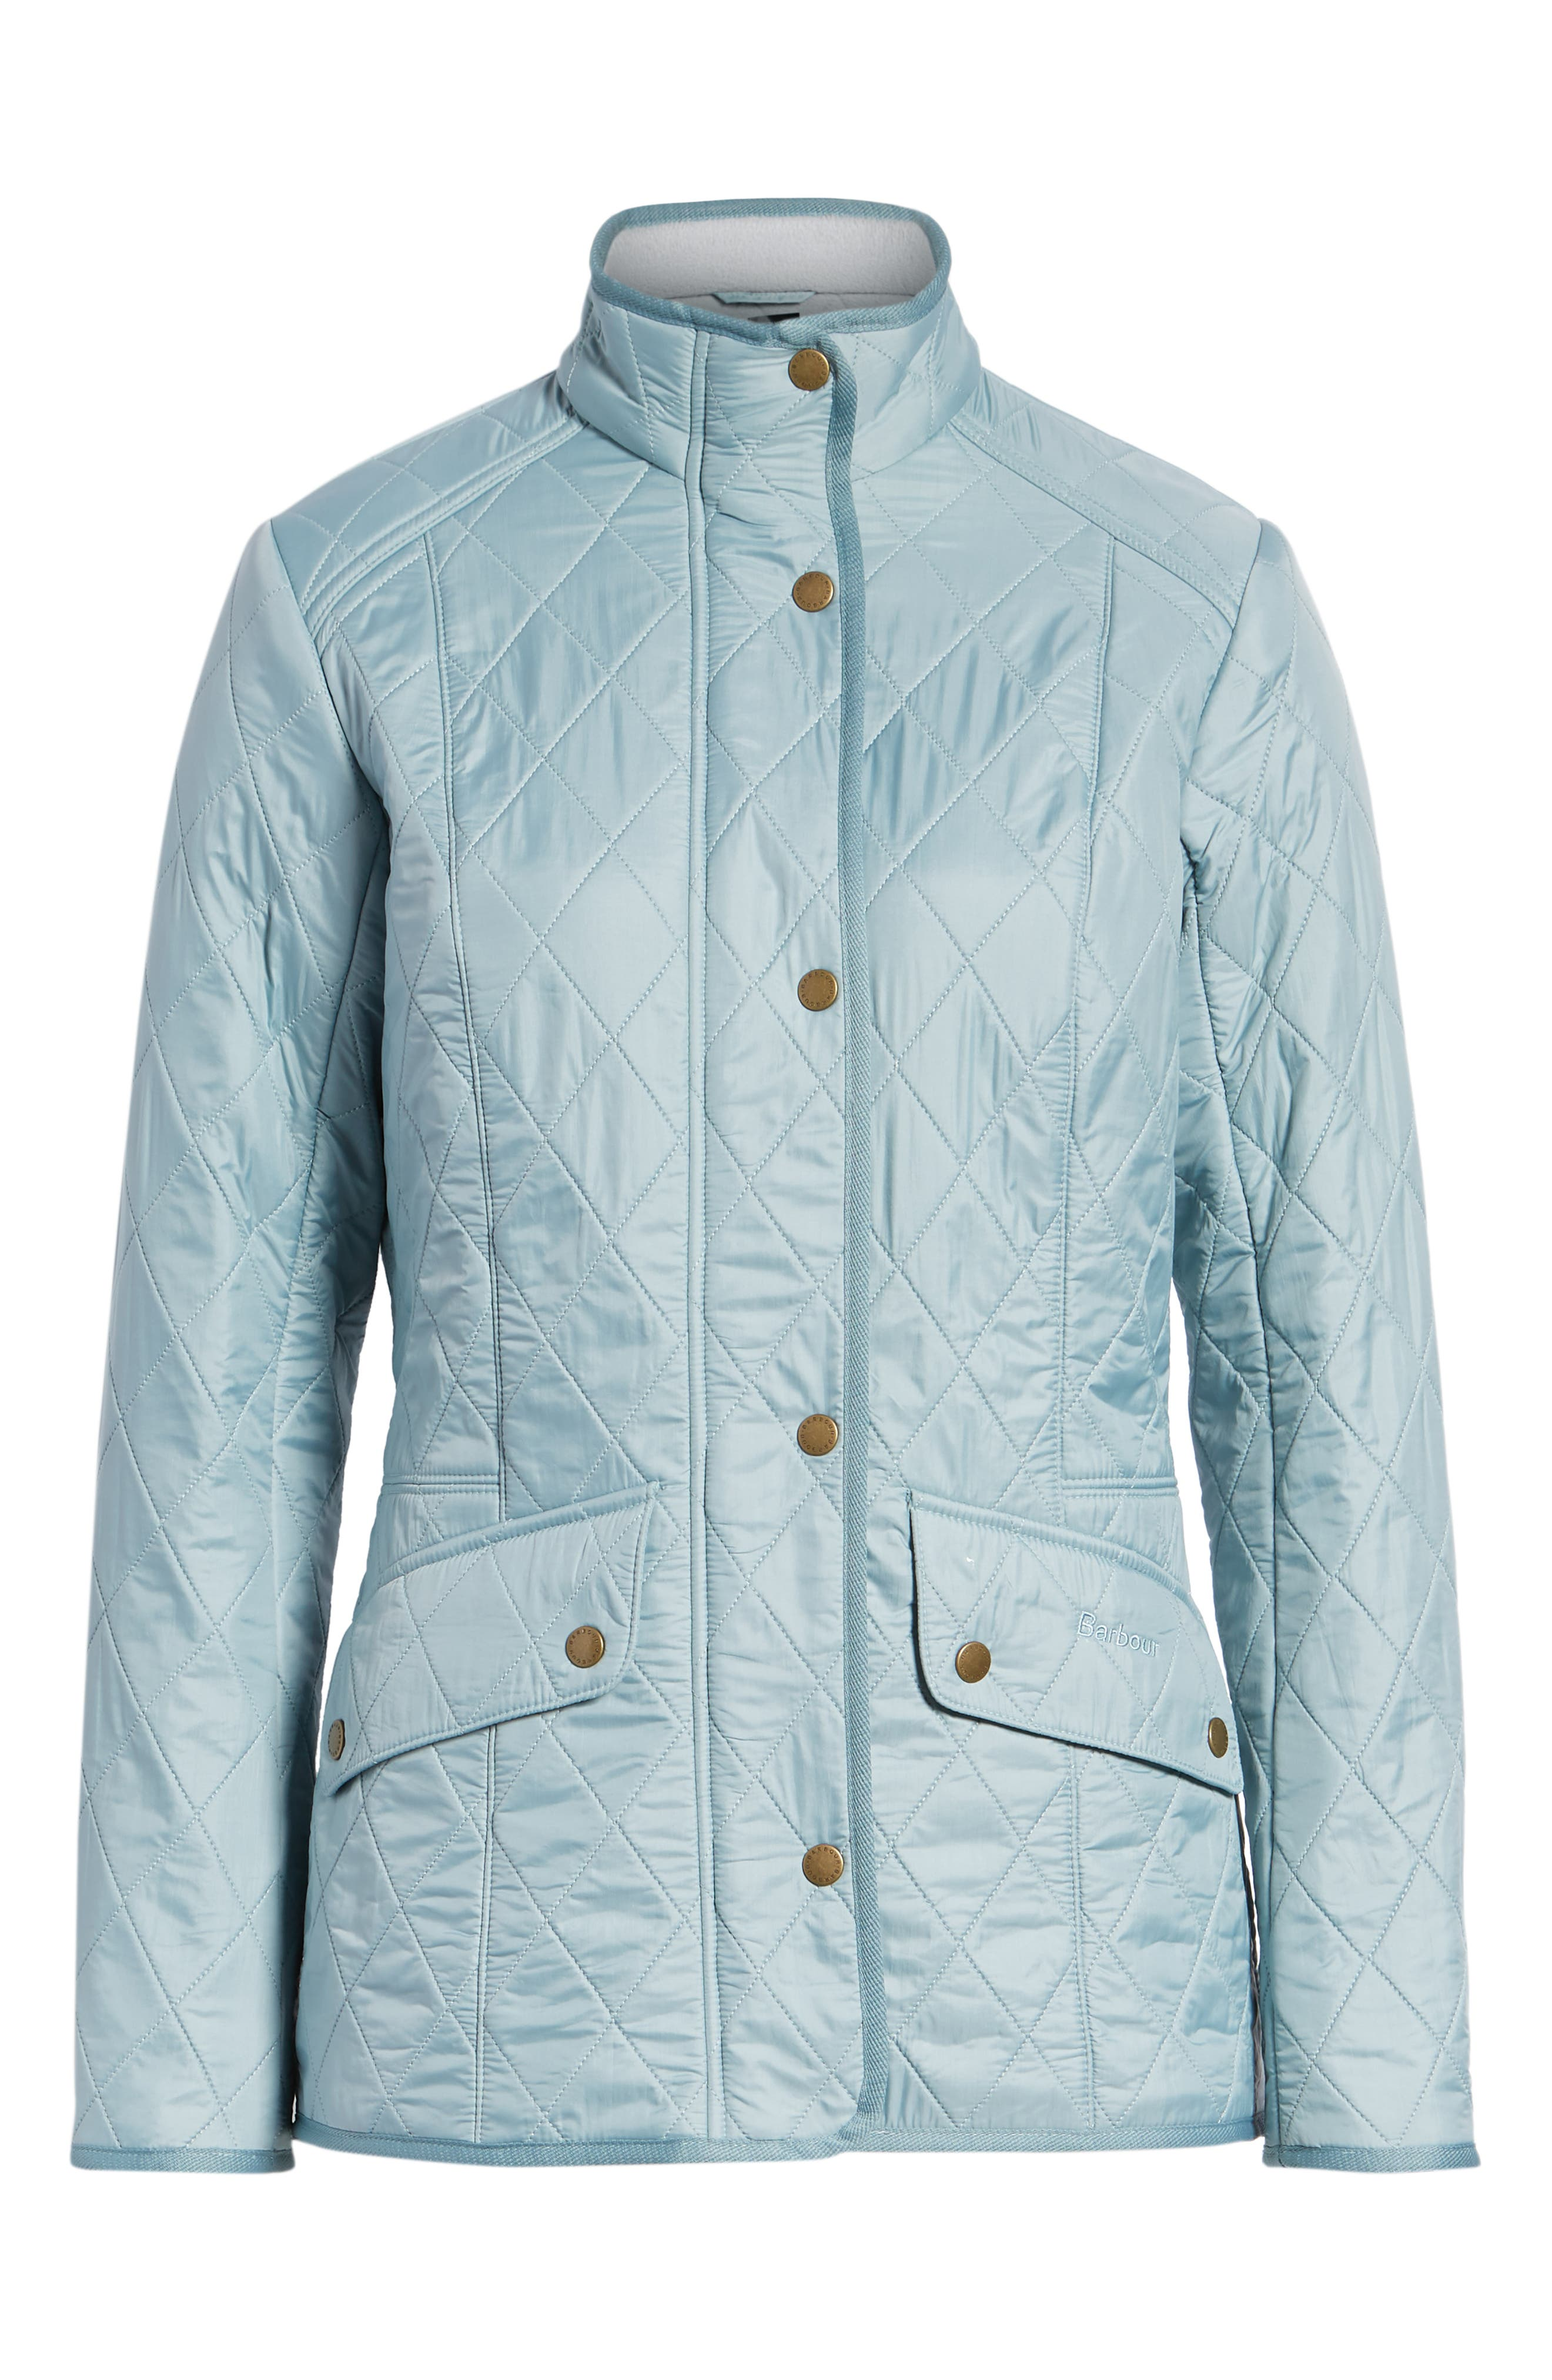 'Cavalry' Quilted Jacket,                             Alternate thumbnail 49, color,